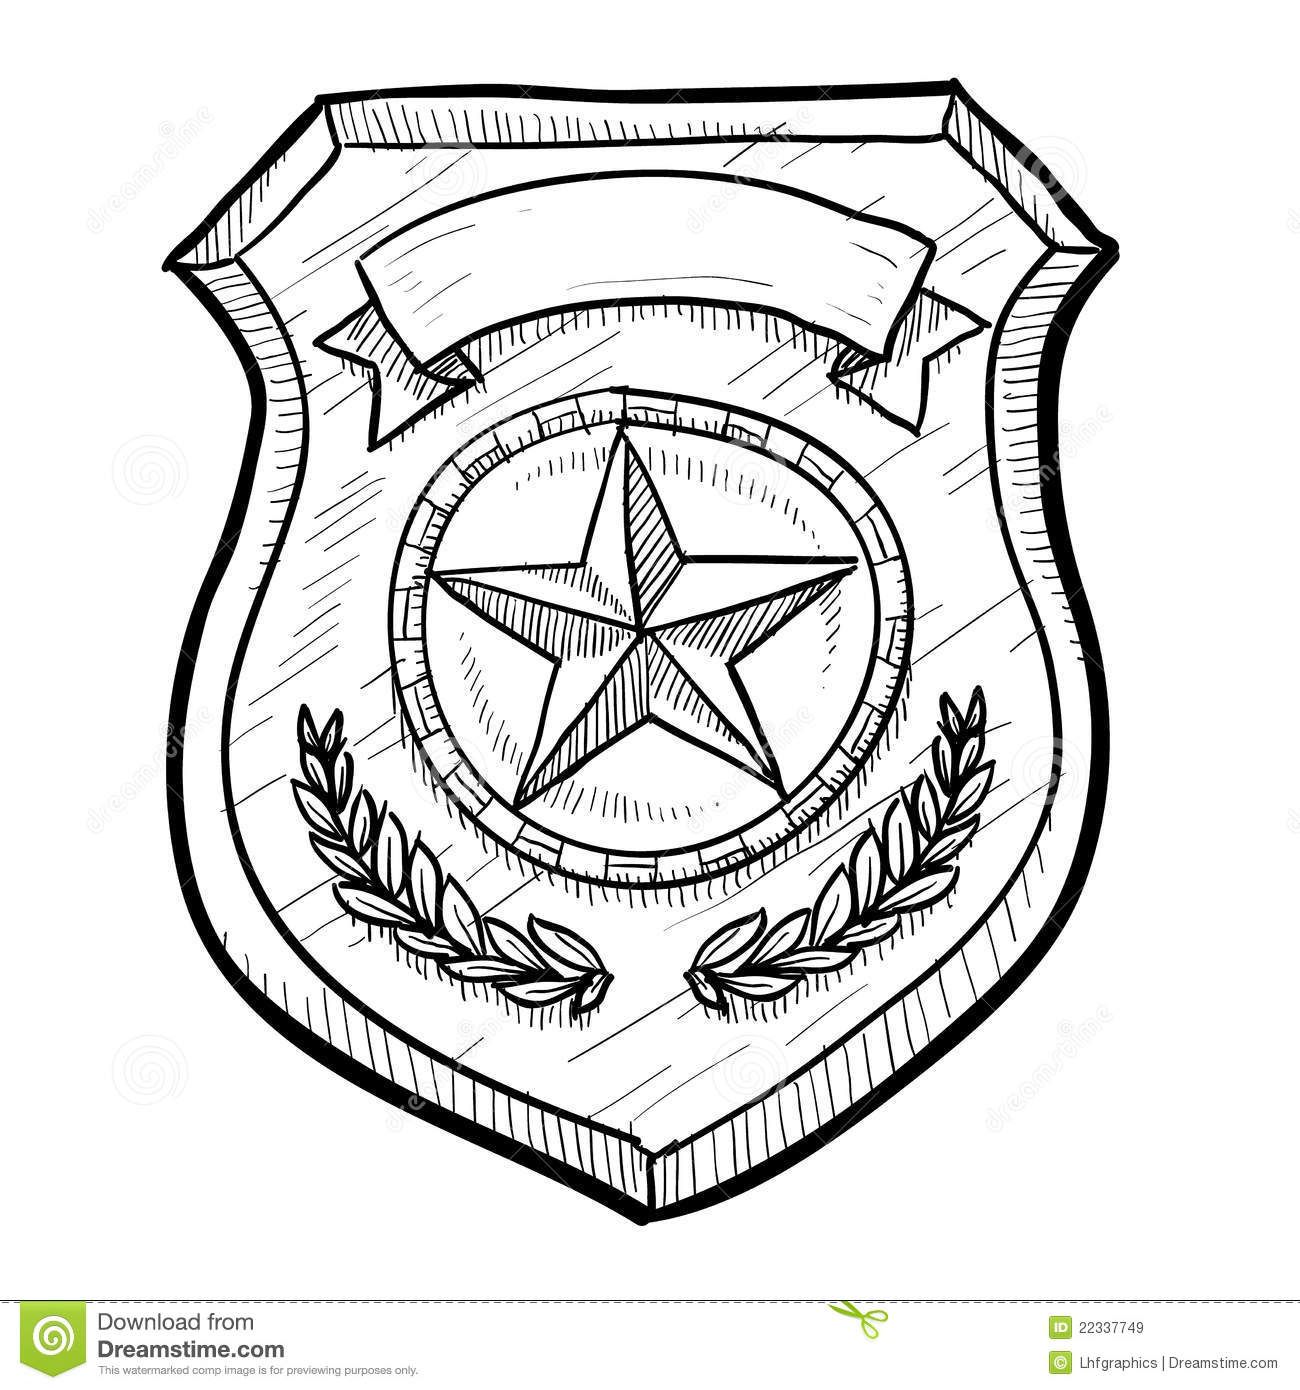 Doodle style police or firefighters badge vector illustration with ...